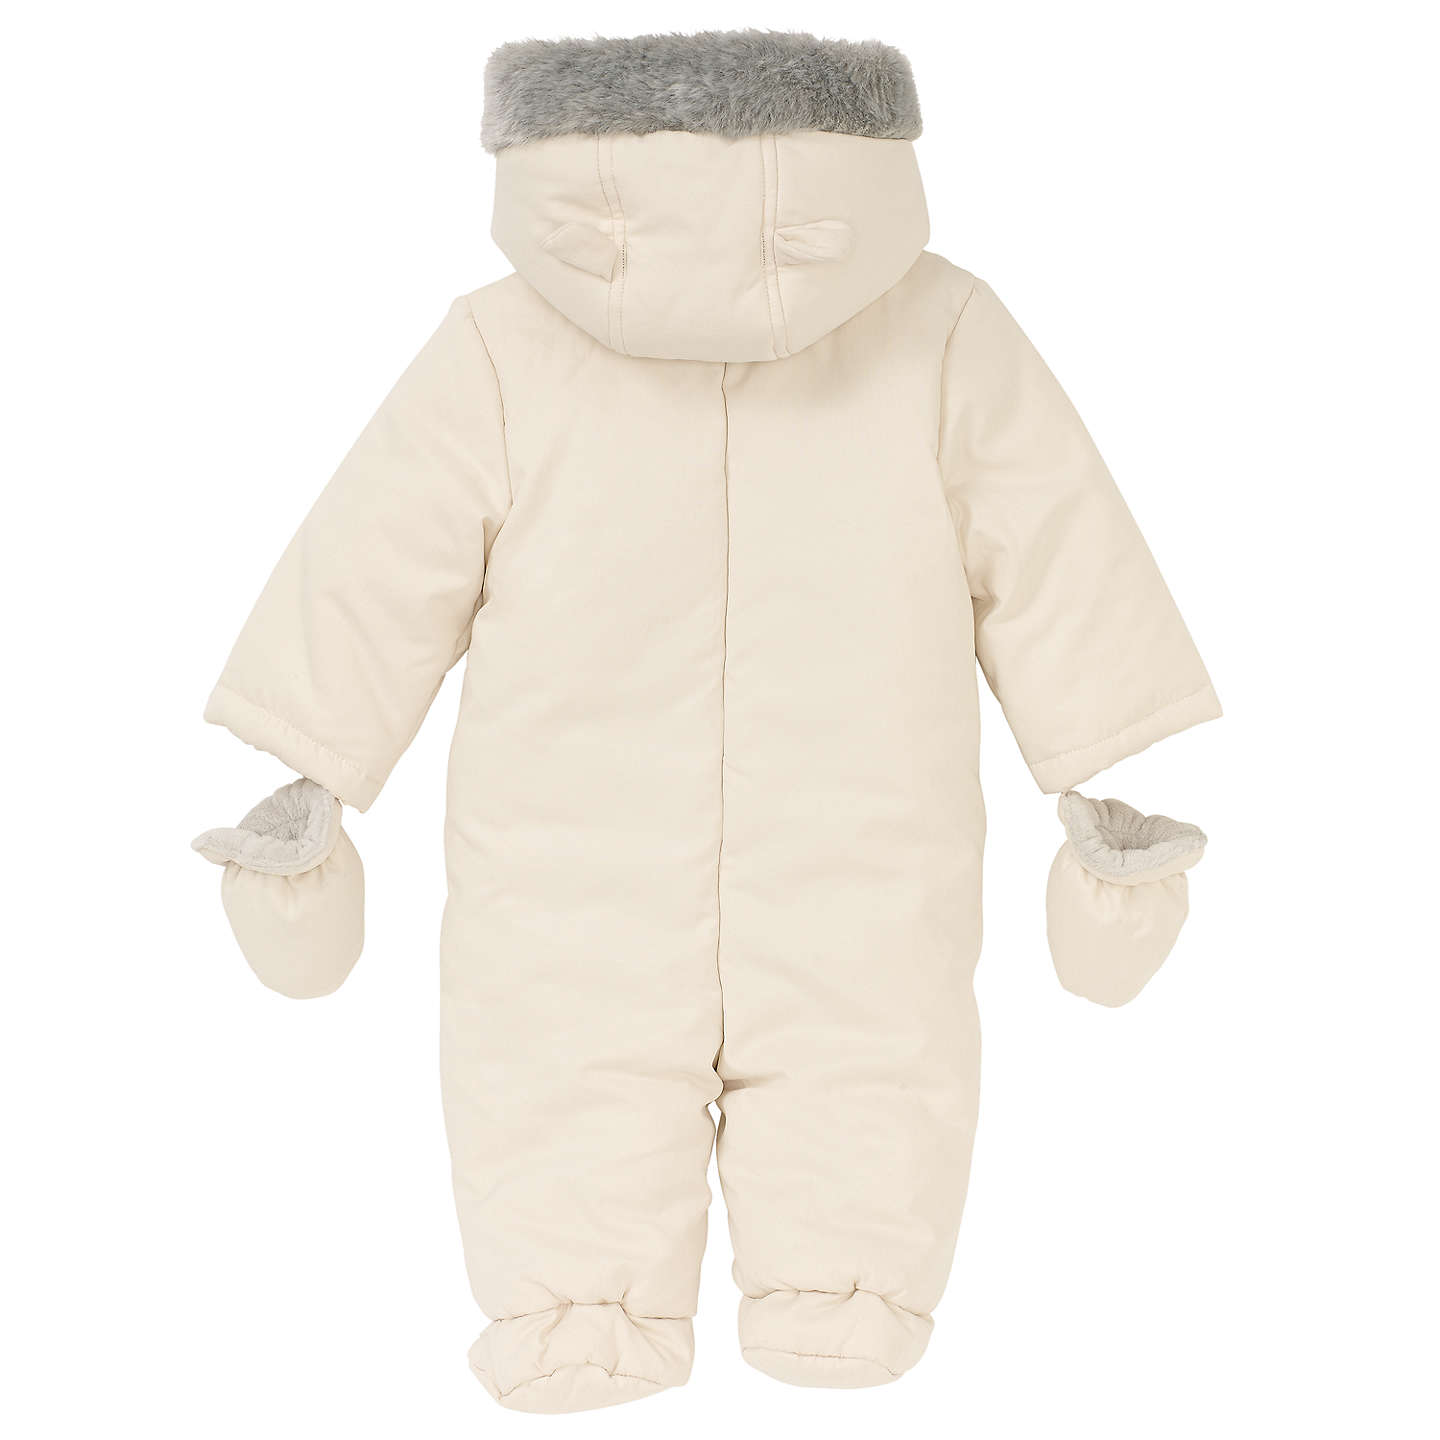 BuyJohn Lewis Baby Wadded Snowsuit, Off White, Newborn Online at johnlewis.com